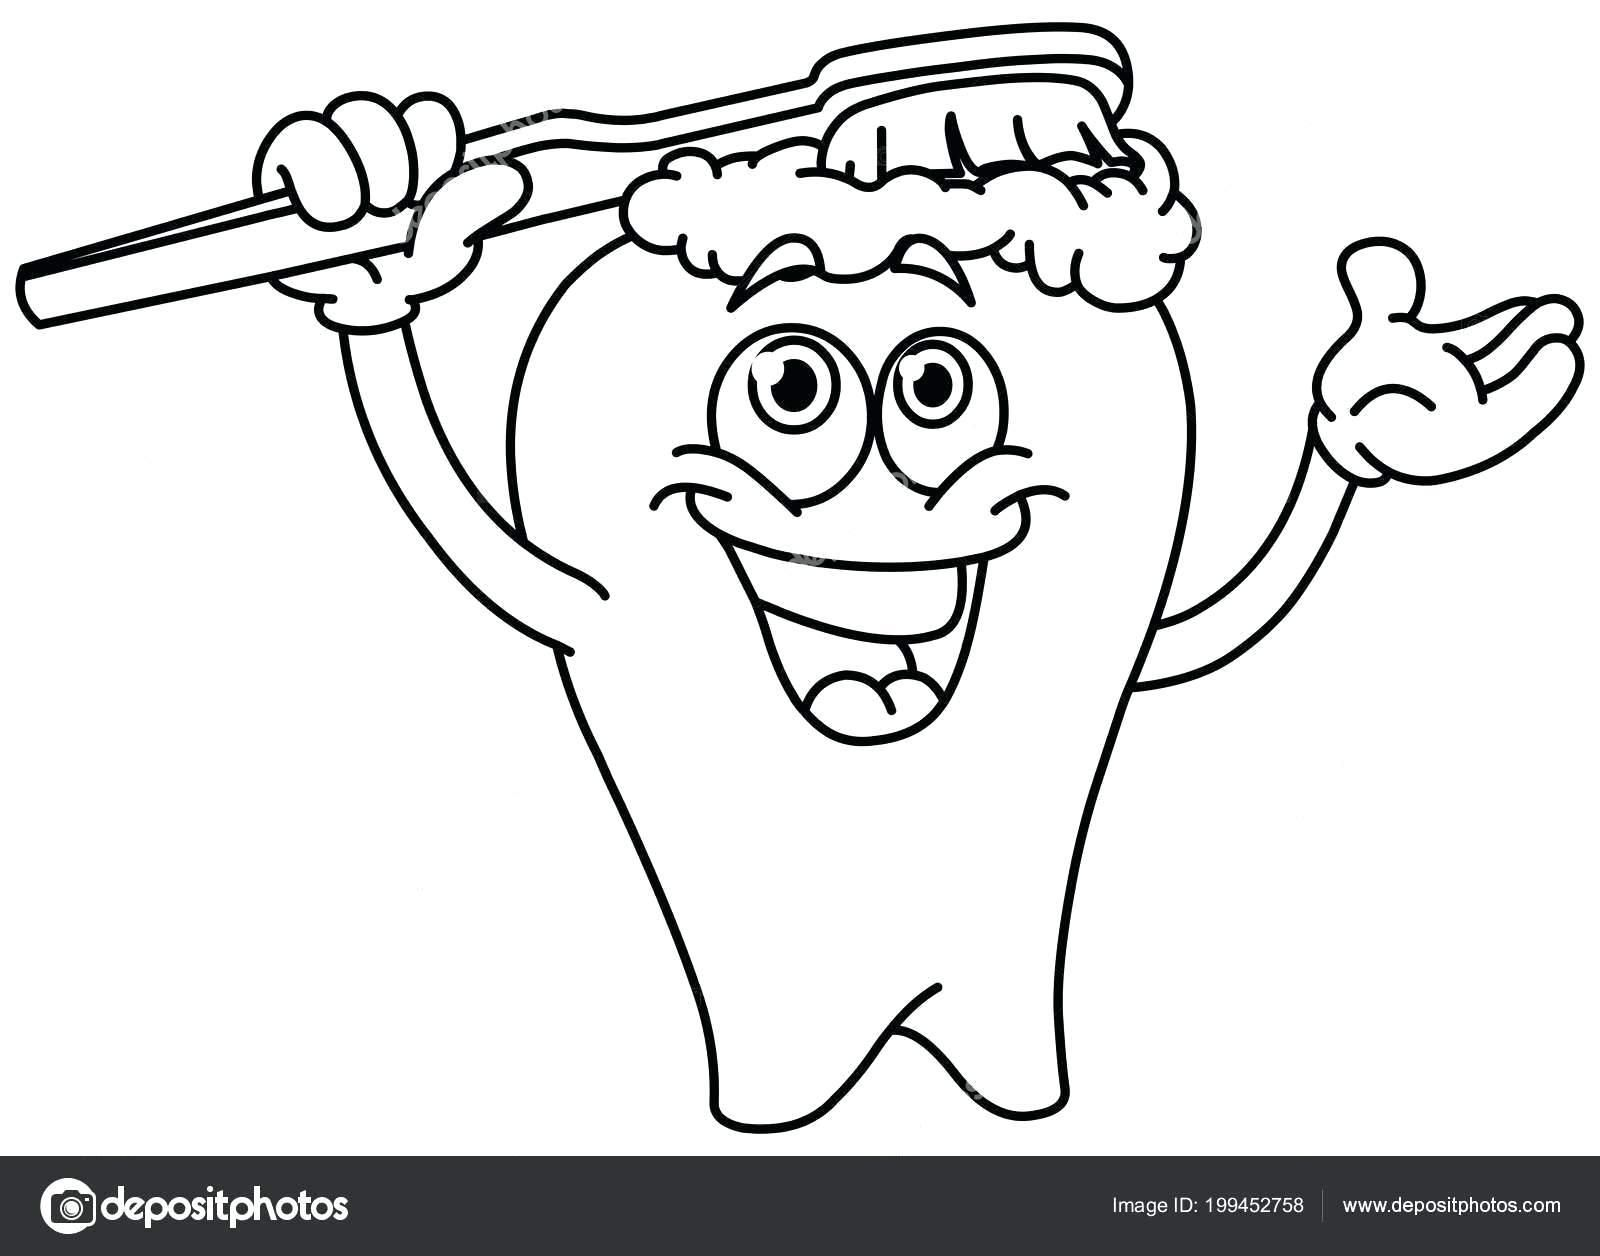 Awesome Coloring Page Brushing Teeth That You Must Know You Re In Good Company If You Re Looking For Coloring Page Brushing Teeth Coloring Pages